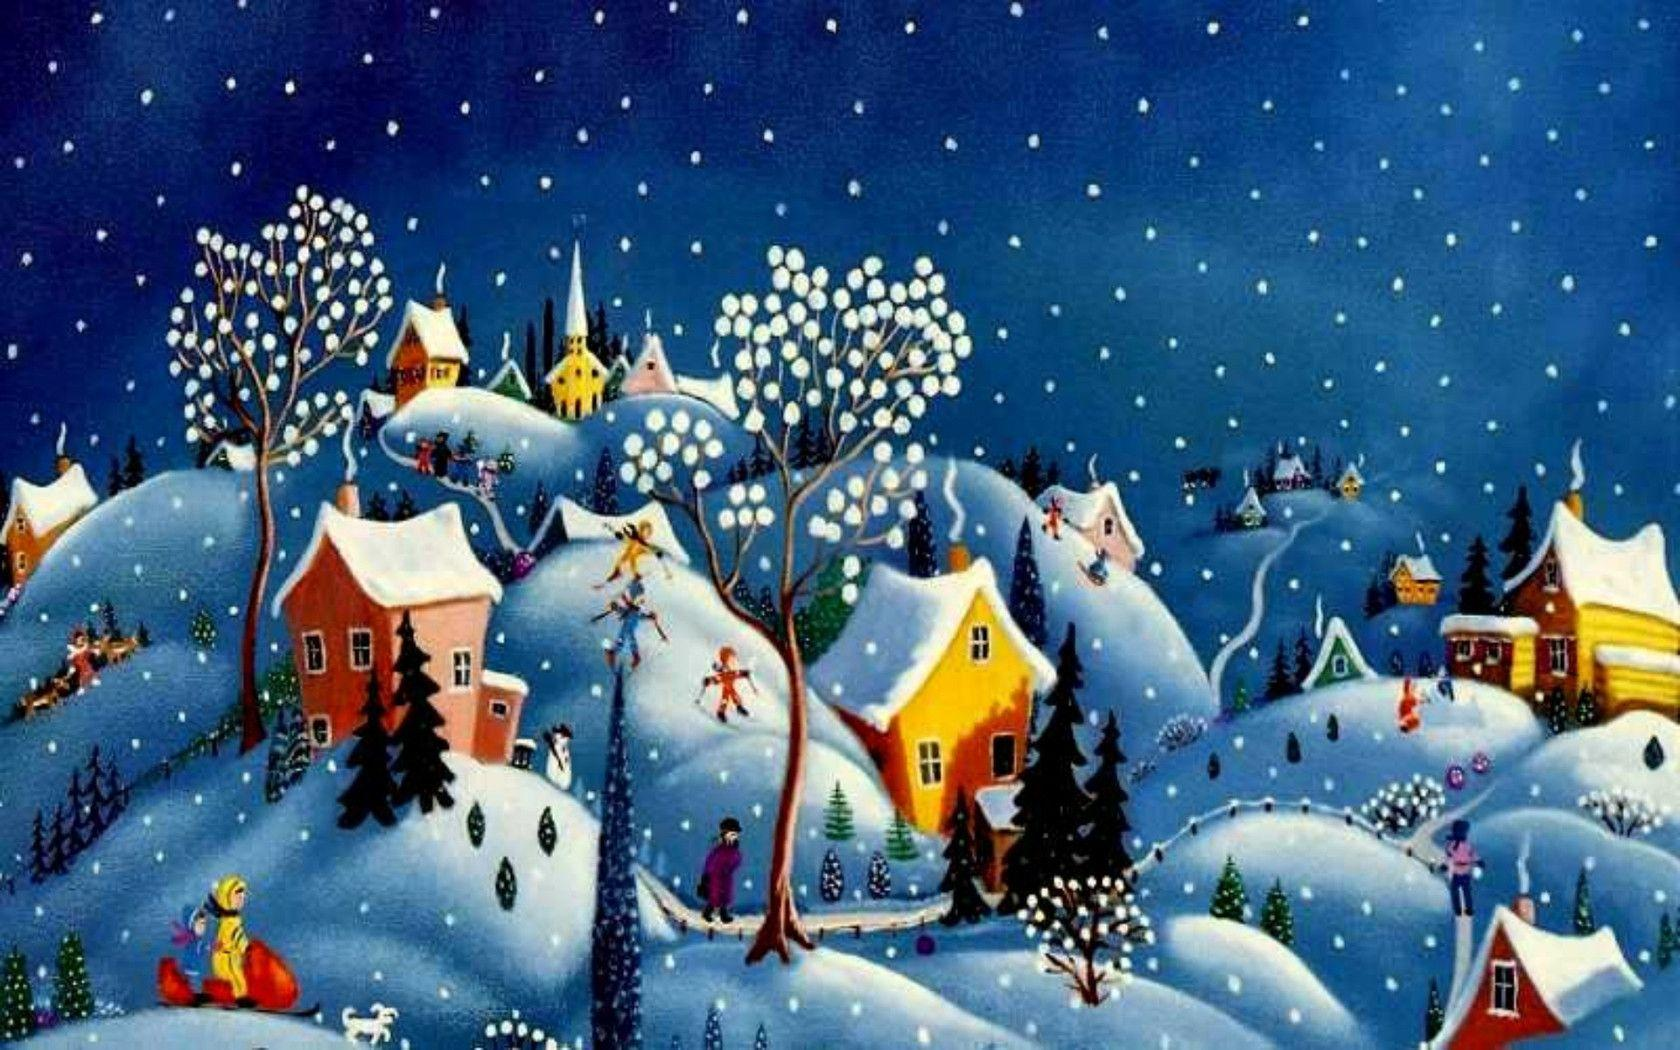 3d Snowy Cottage Animated Wallpaper Windows 7 Christmas Village Wallpapers Wallpaper Cave